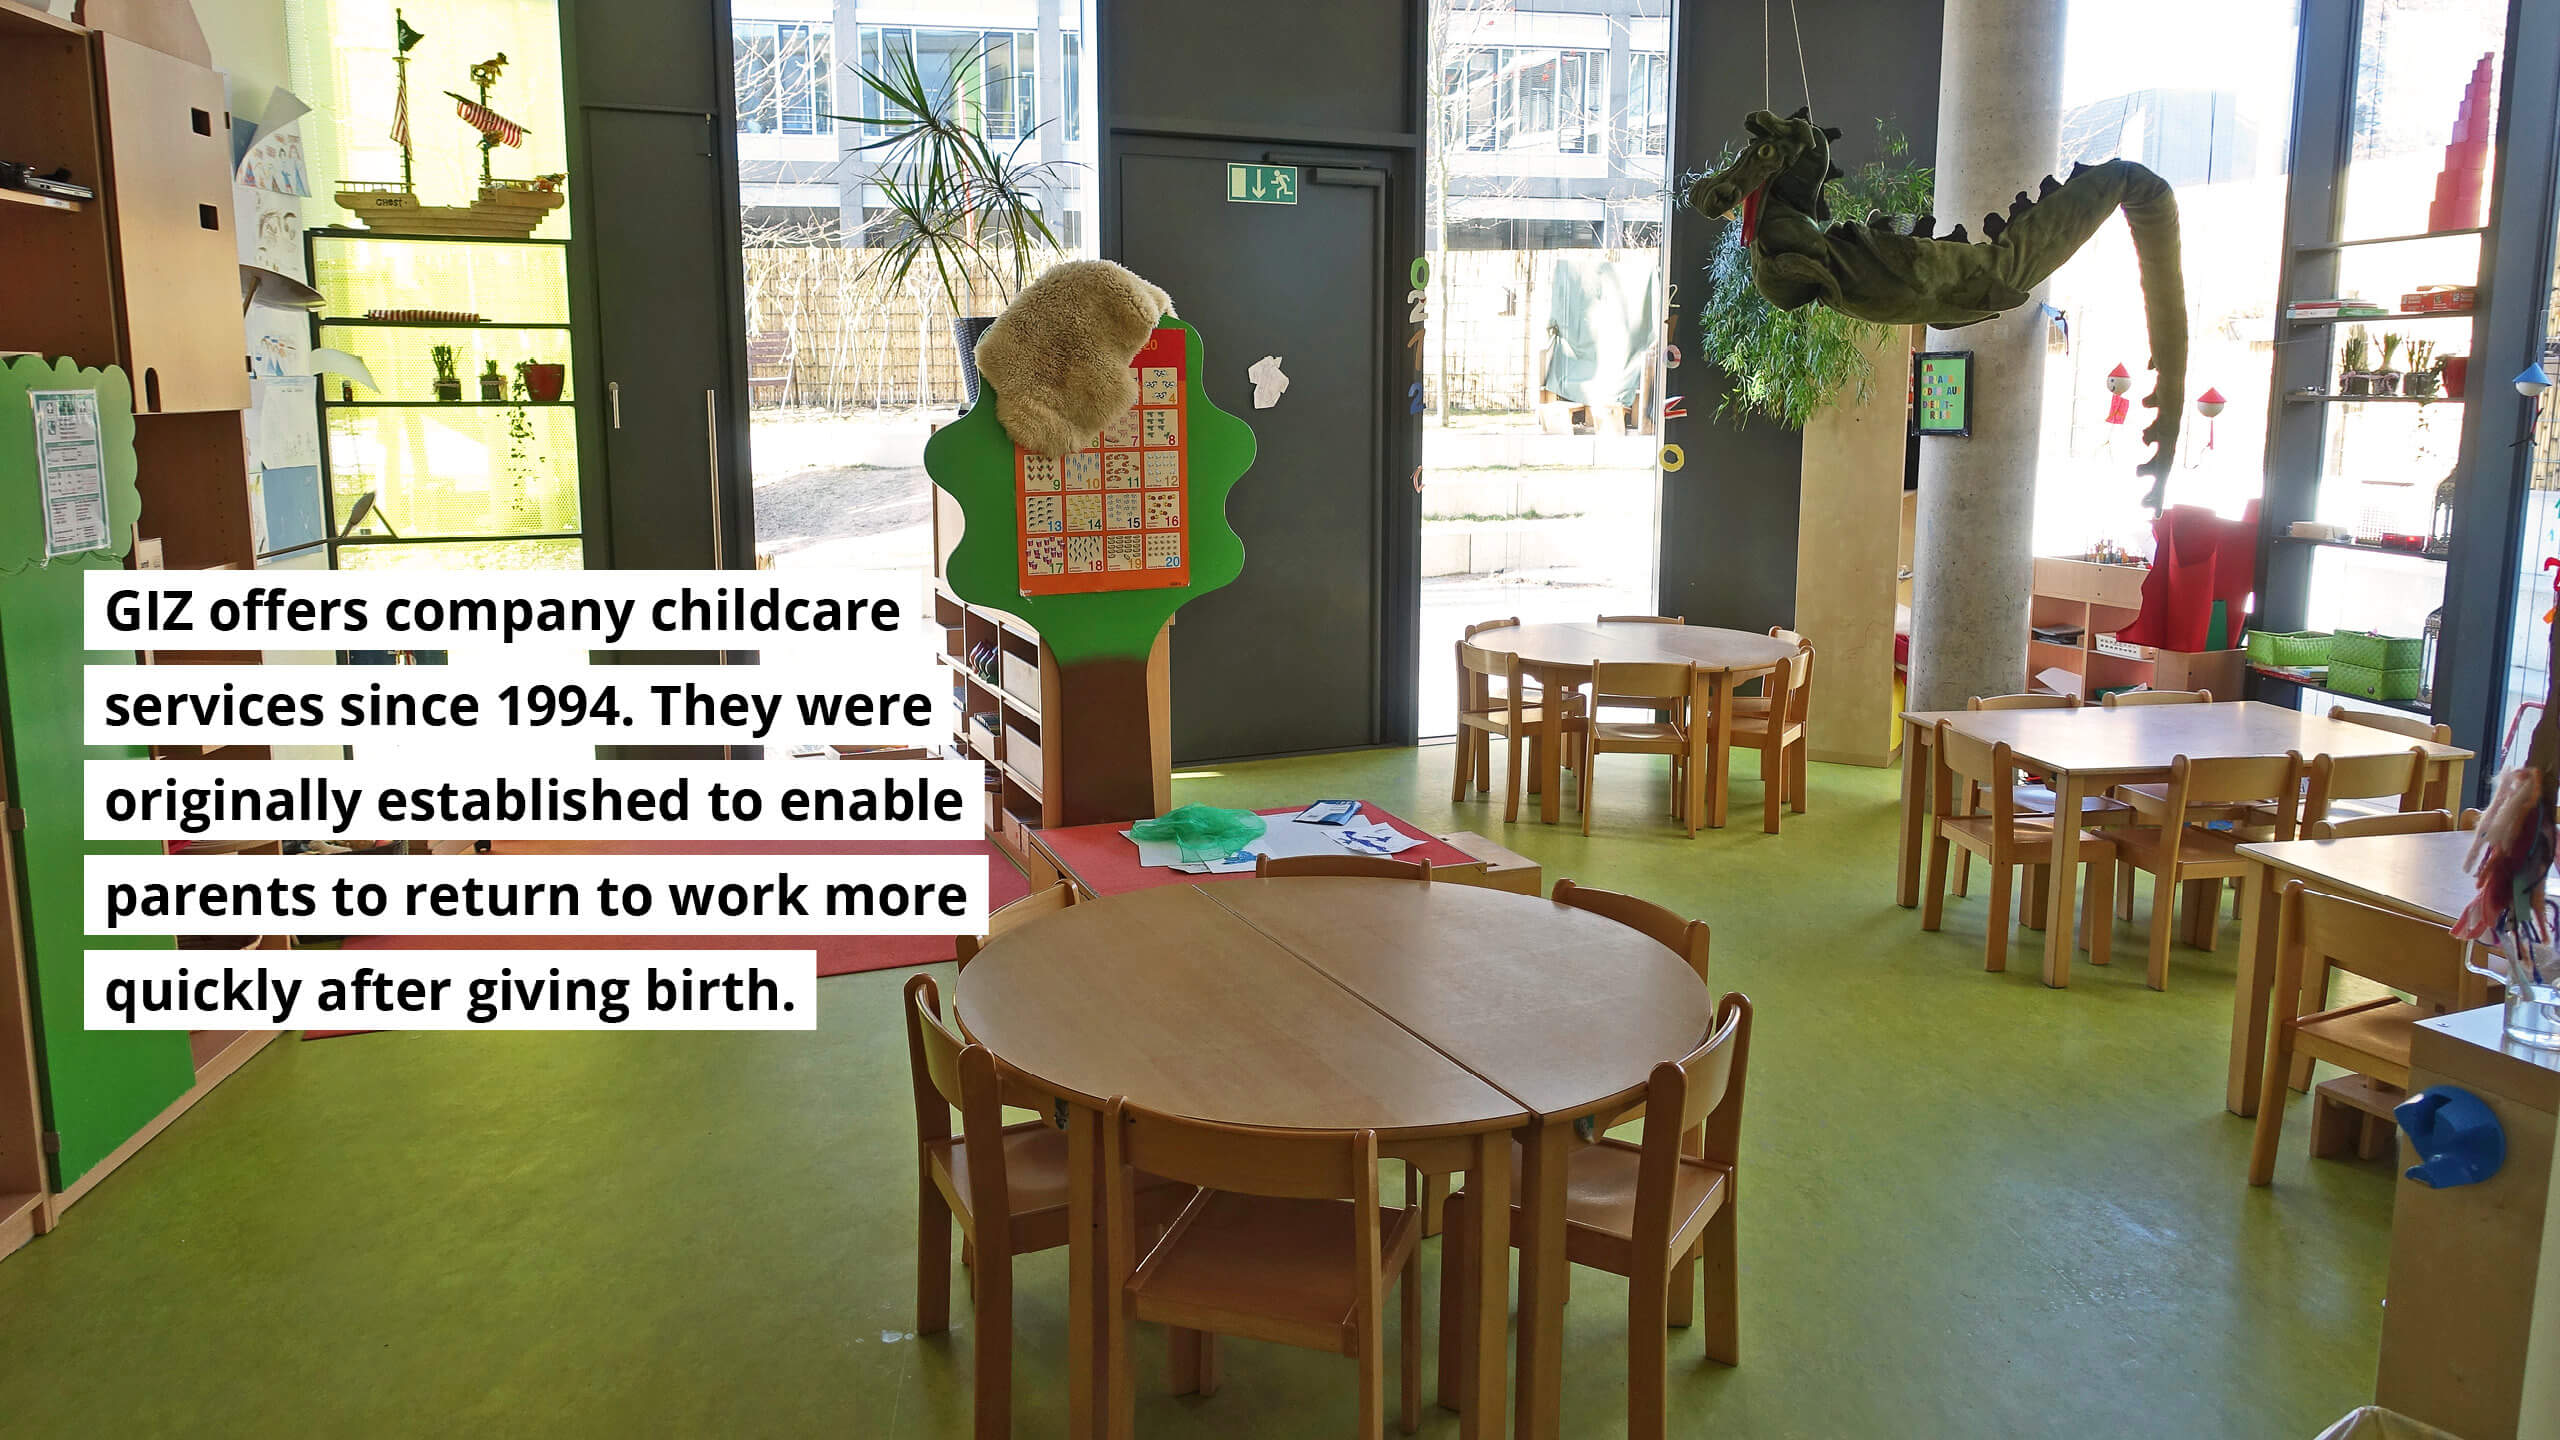 GIZ offers childcare services since 1994. They were originally established to enable parents to return to work more quickly after giving birth.